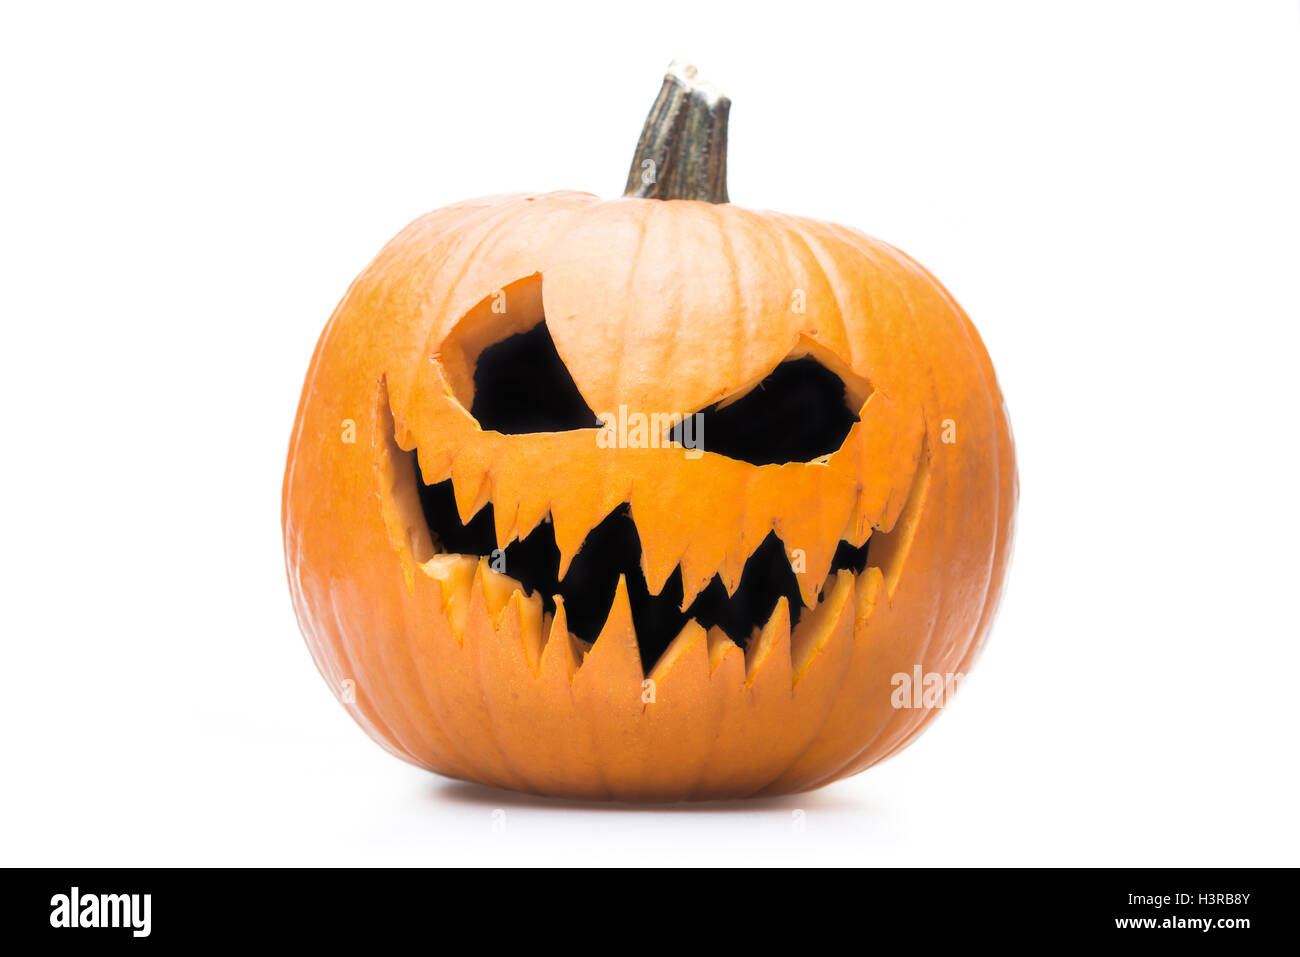 Halloween pumpkin's grin on white isolated background - Stock Image